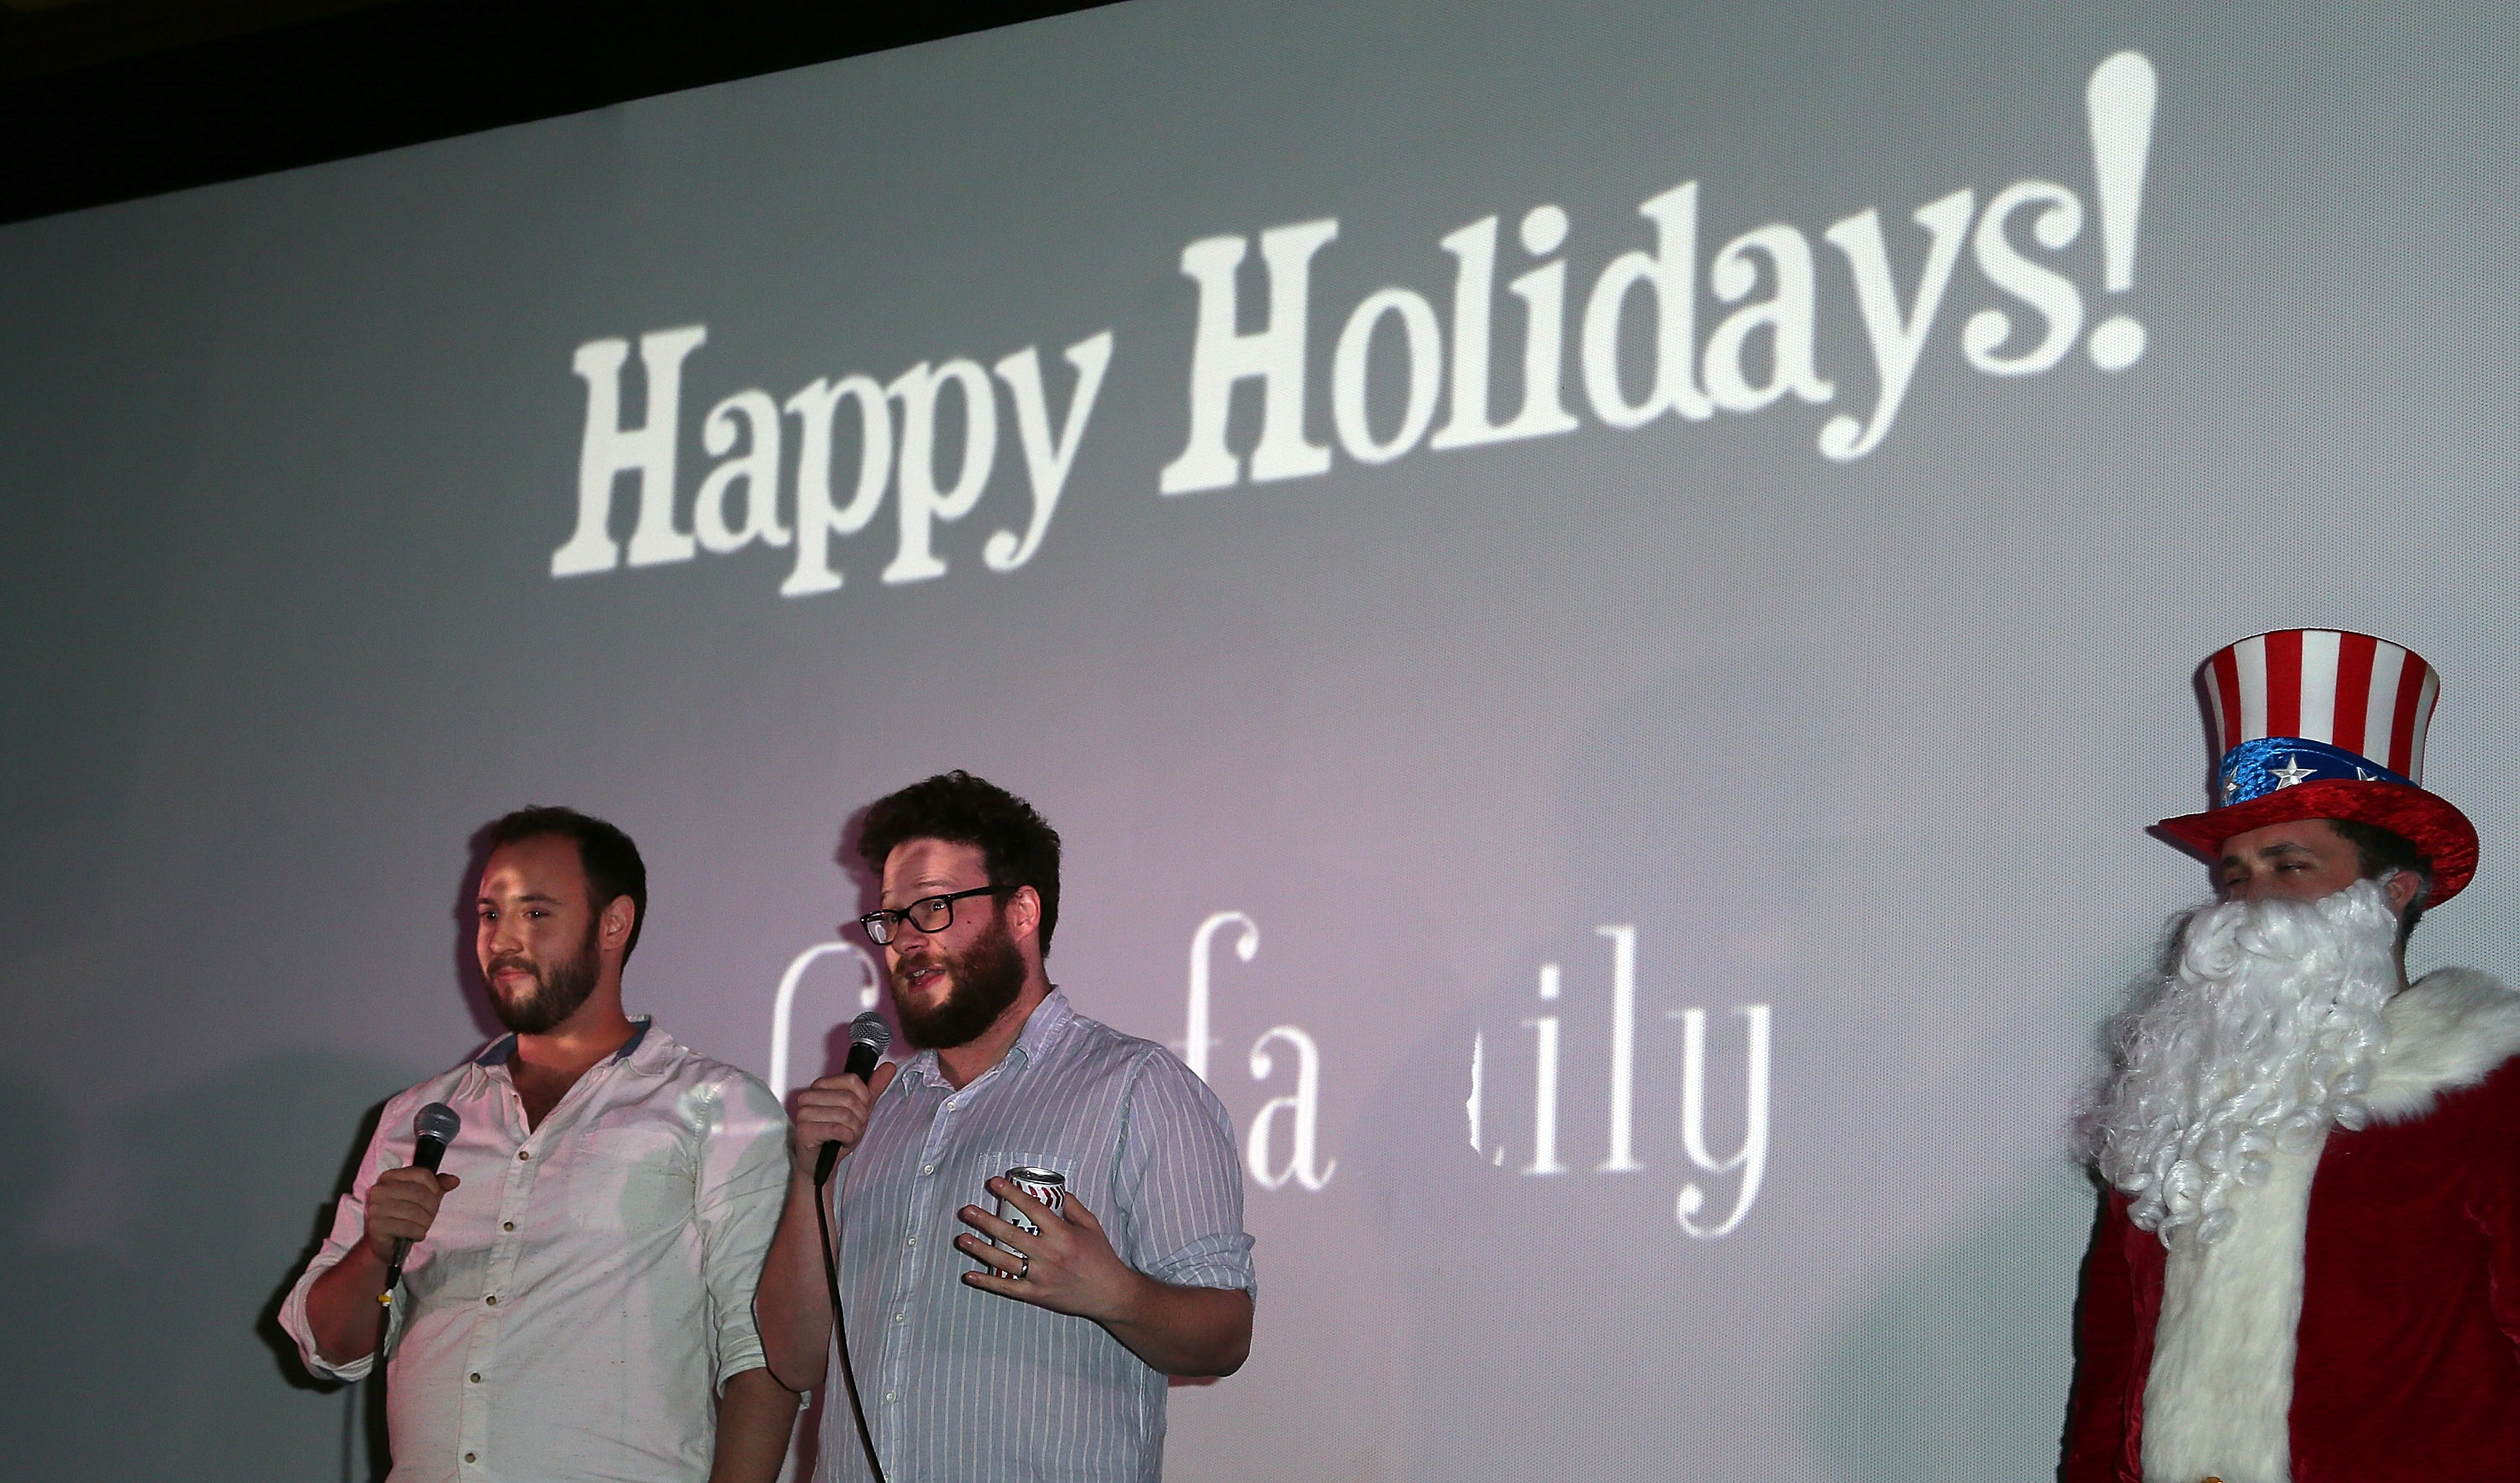 Writers/directors Evan Goldberg (L) and Seth Rogen introduce the screening of Sony Pictures'  The Interview  at Cinefamily on Dec. 25, 2014 in Los Angeles.